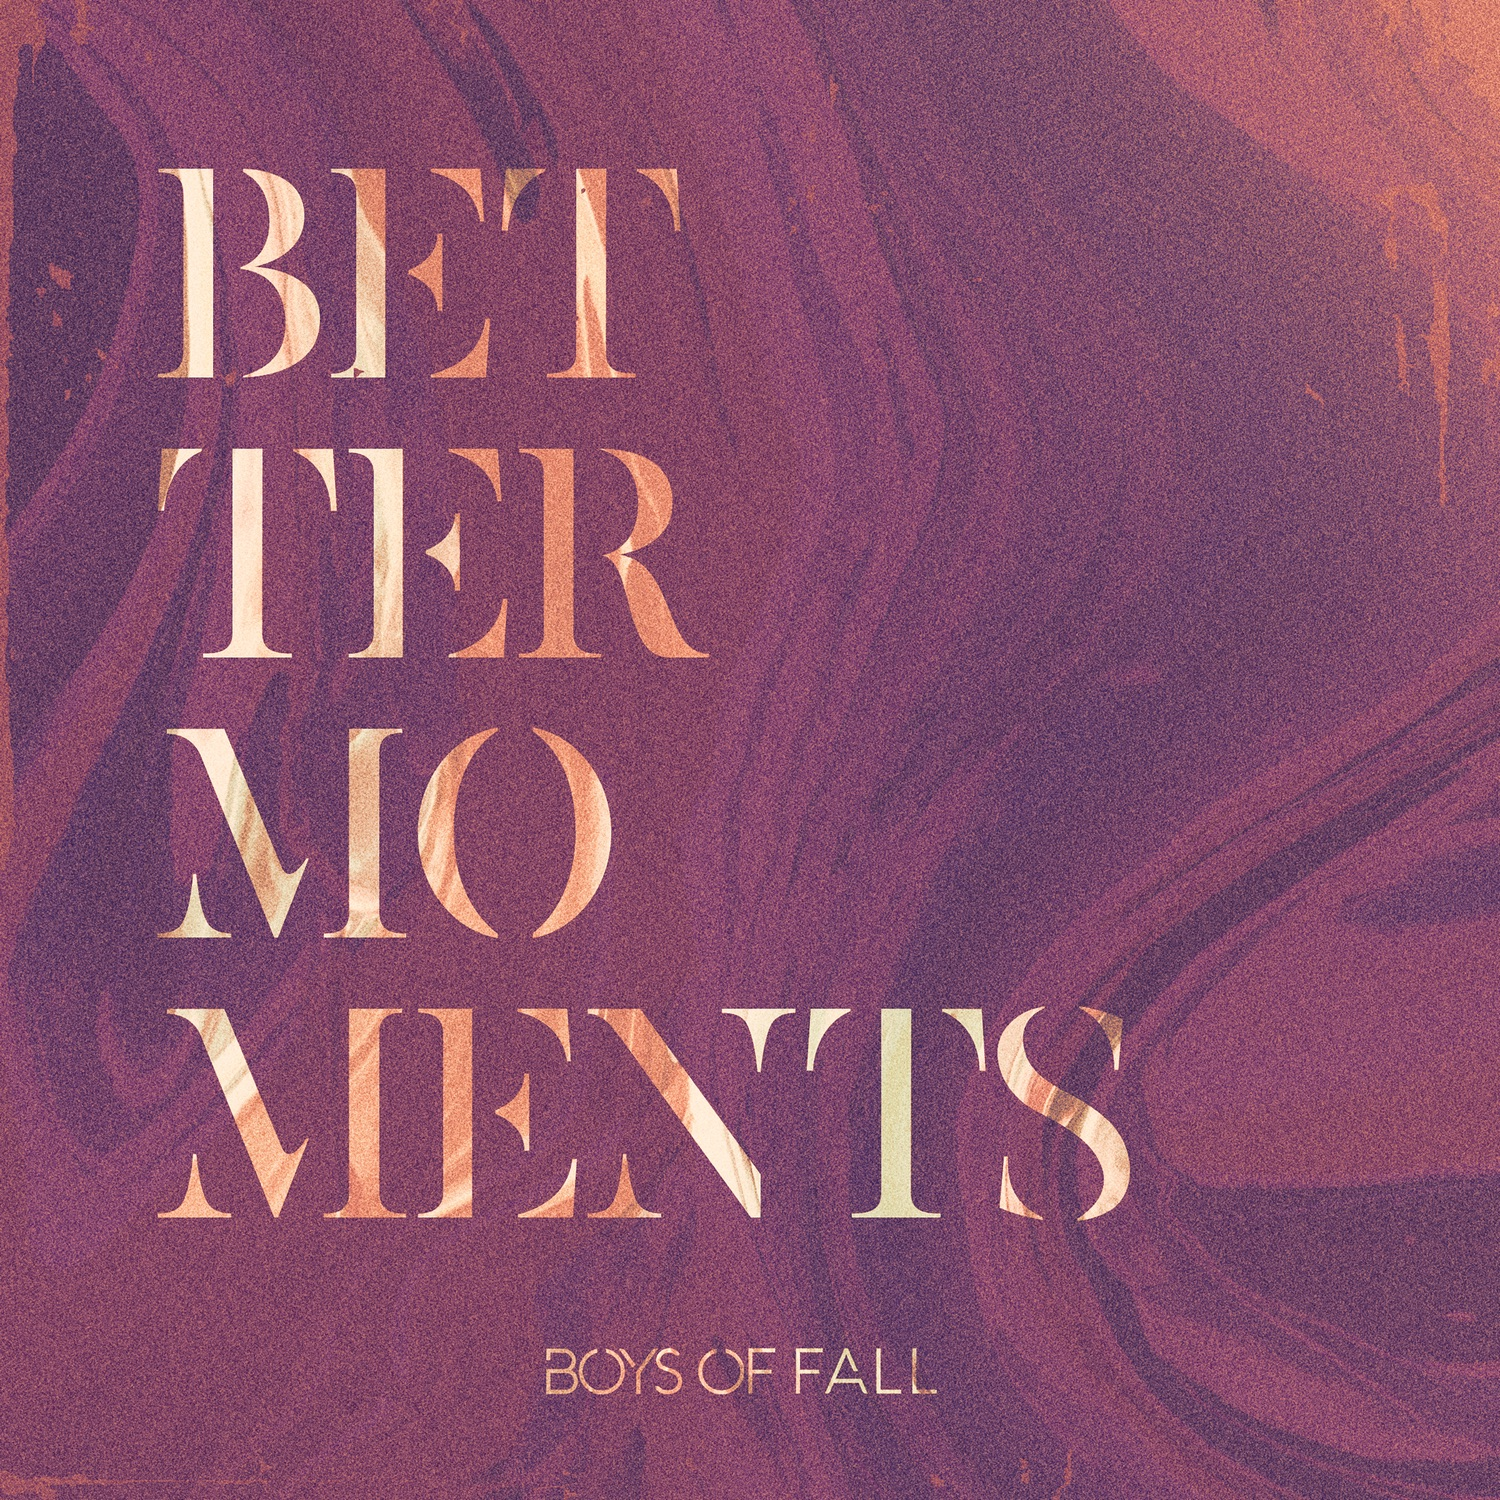 Boys of Fall - Better Moments (2018)